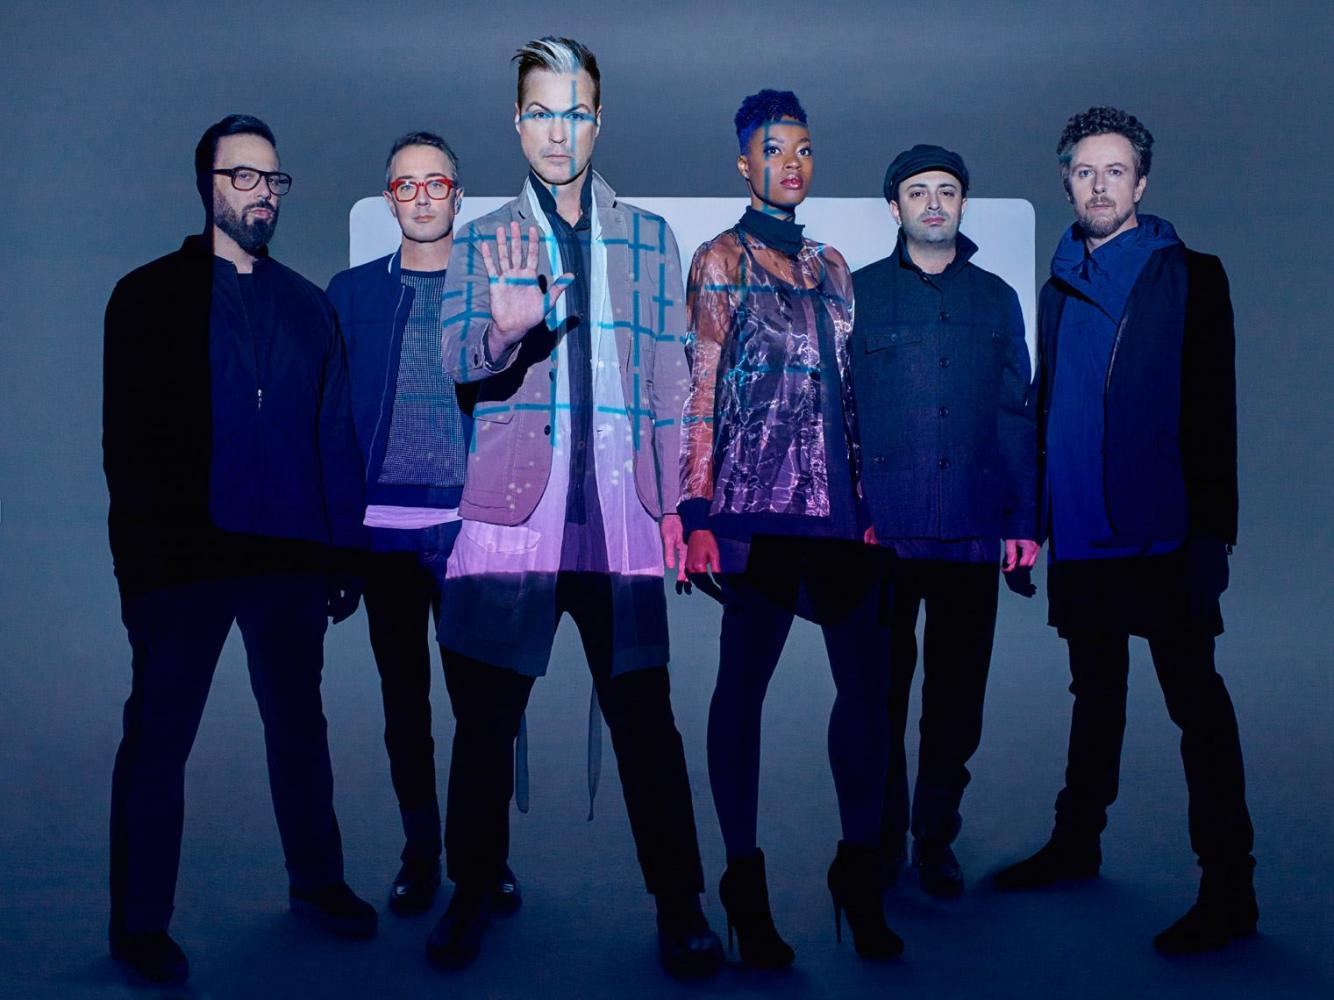 Fitz and the Tantrums handclap their way to Homecoming.